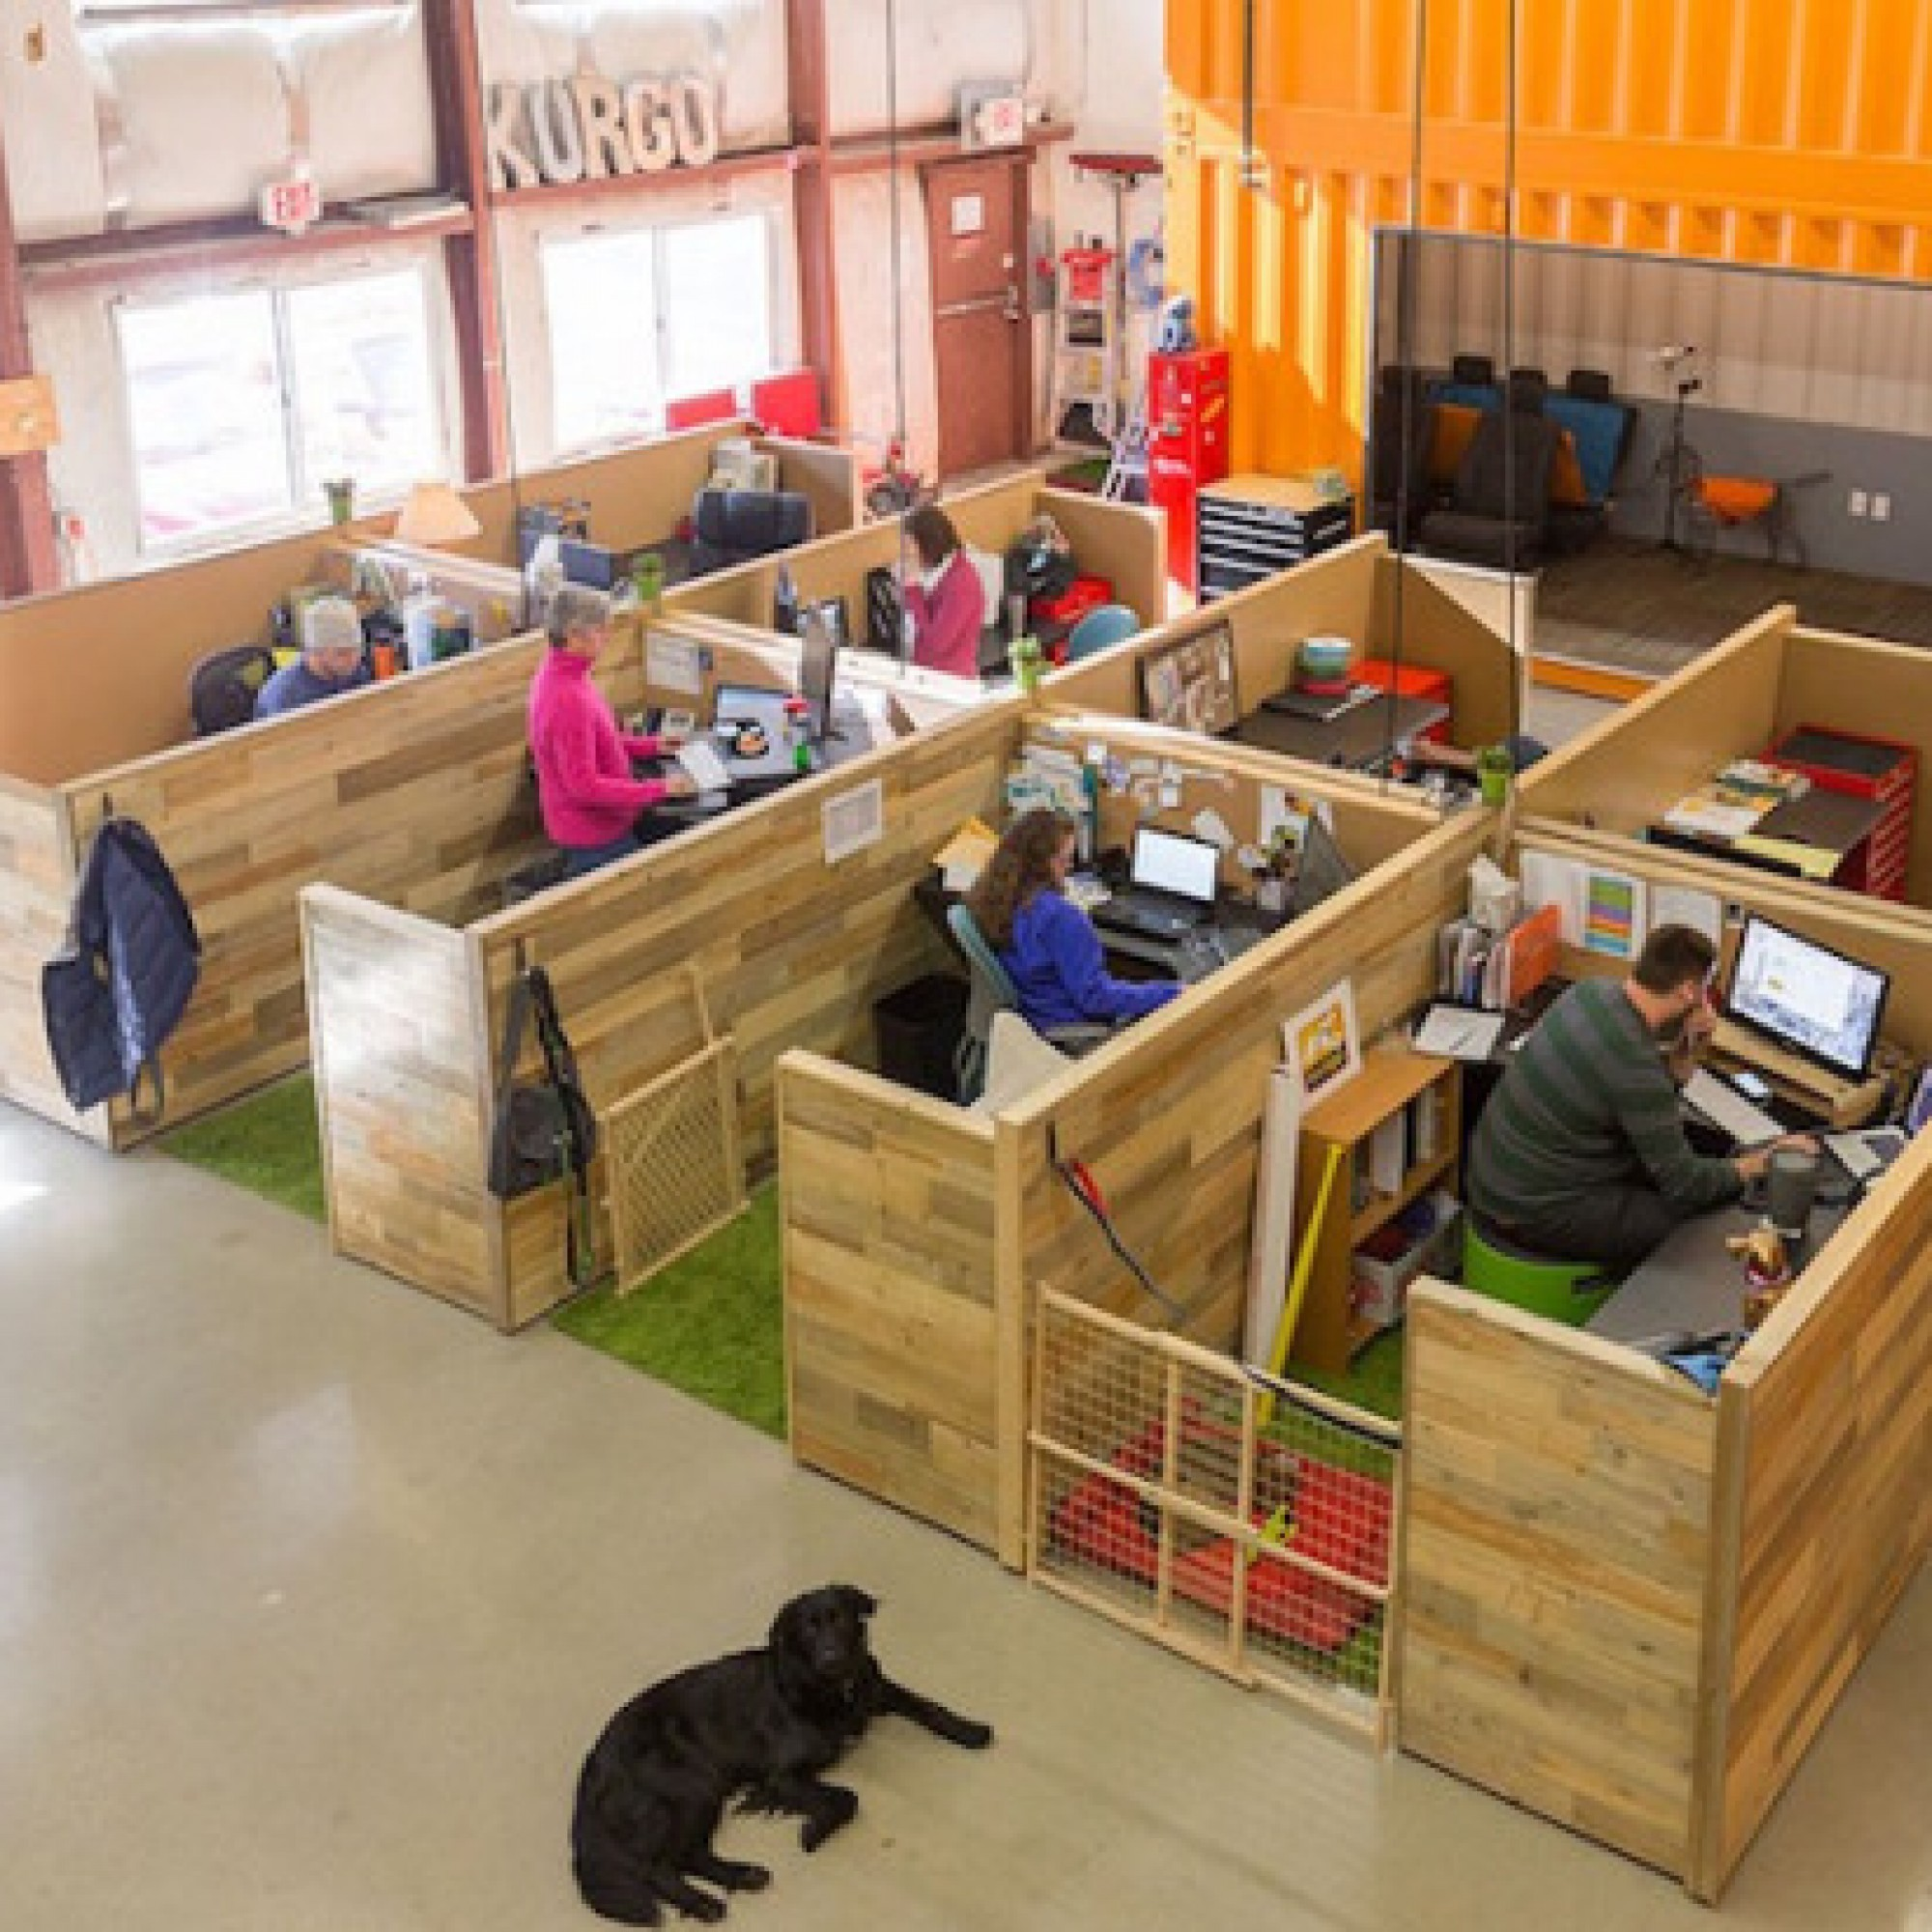 This office is the most dog-friendly workplace that's ever existed